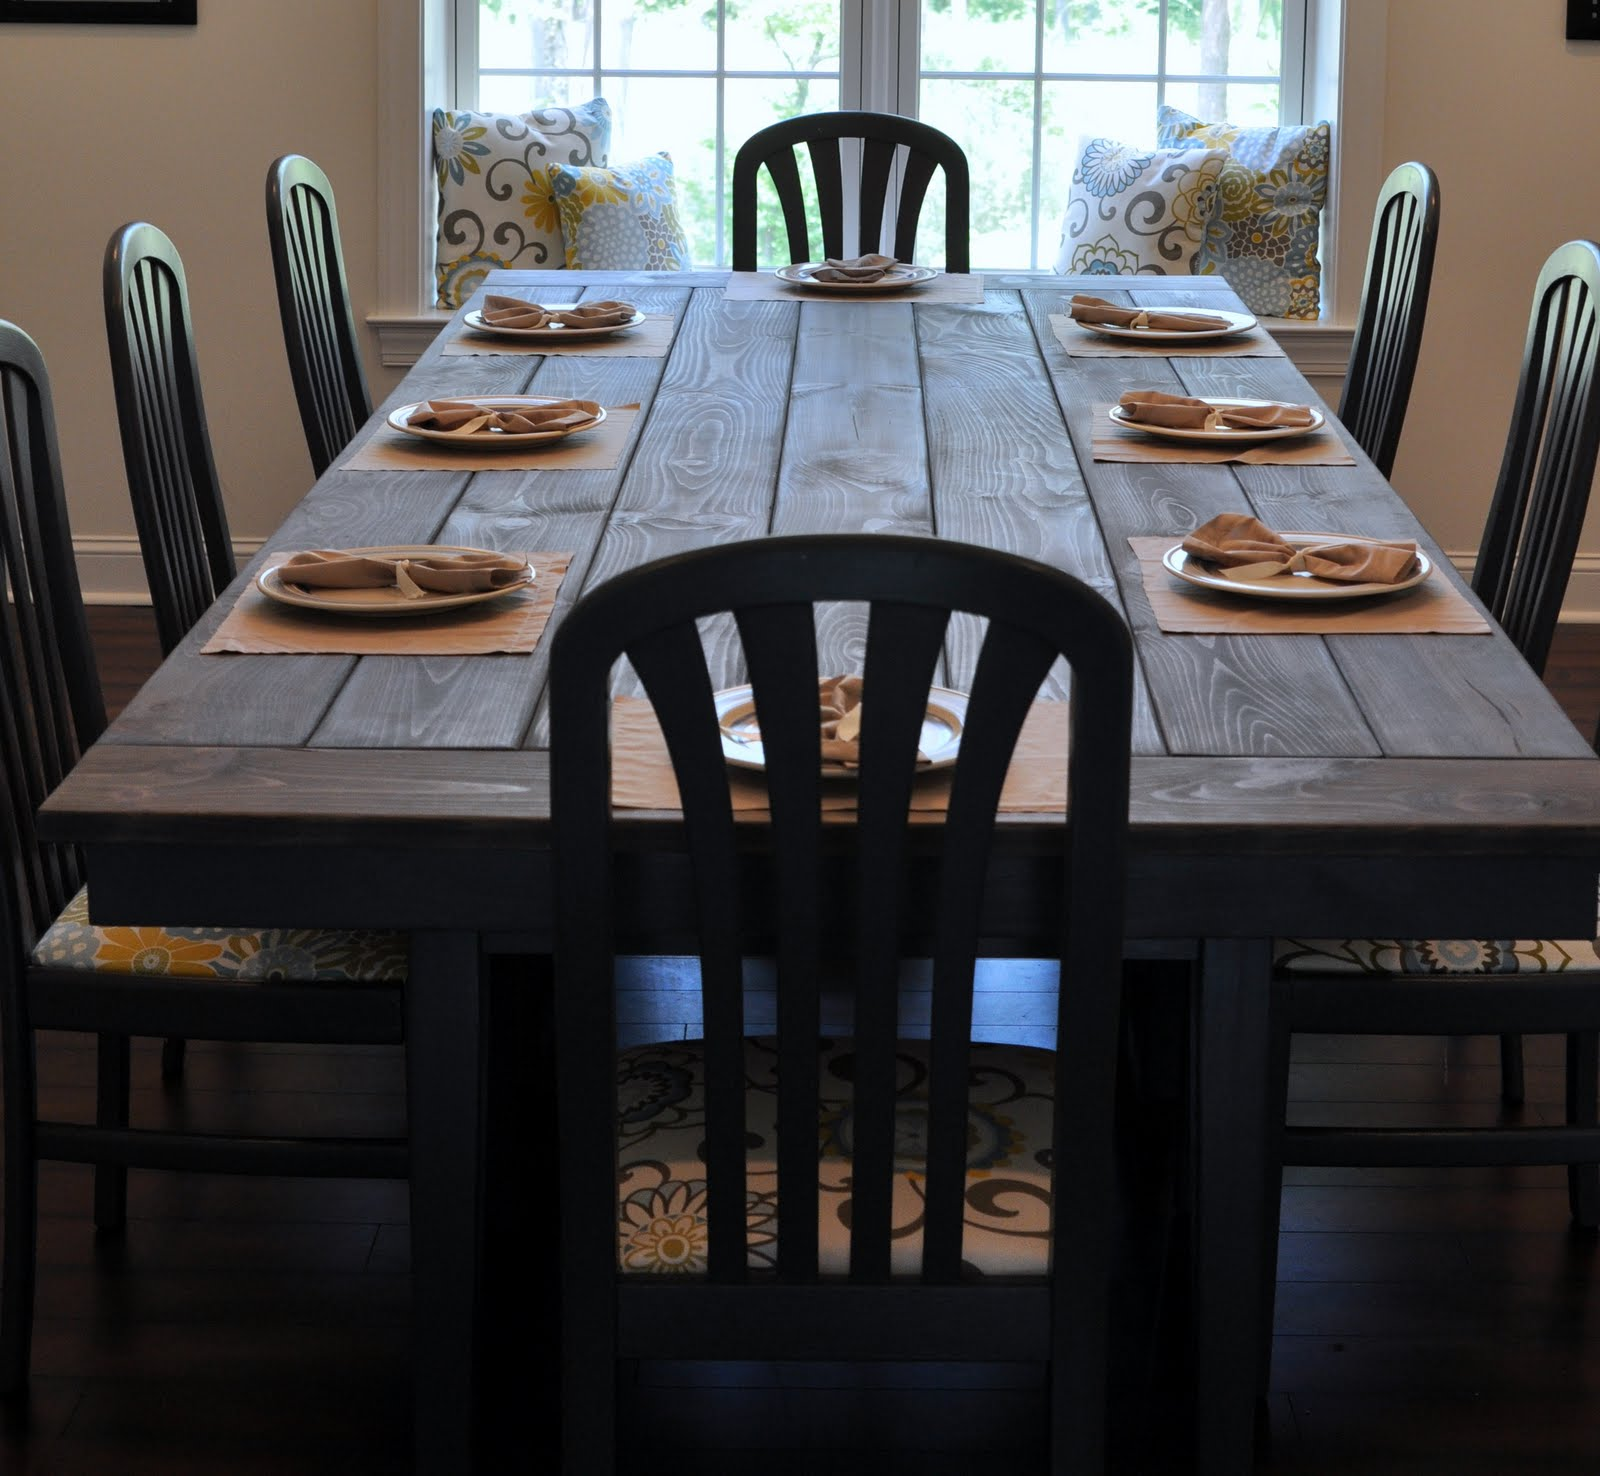 How to make a farmhouse dining table large and beautiful photos photo to select how to make a - Dining room table images ...